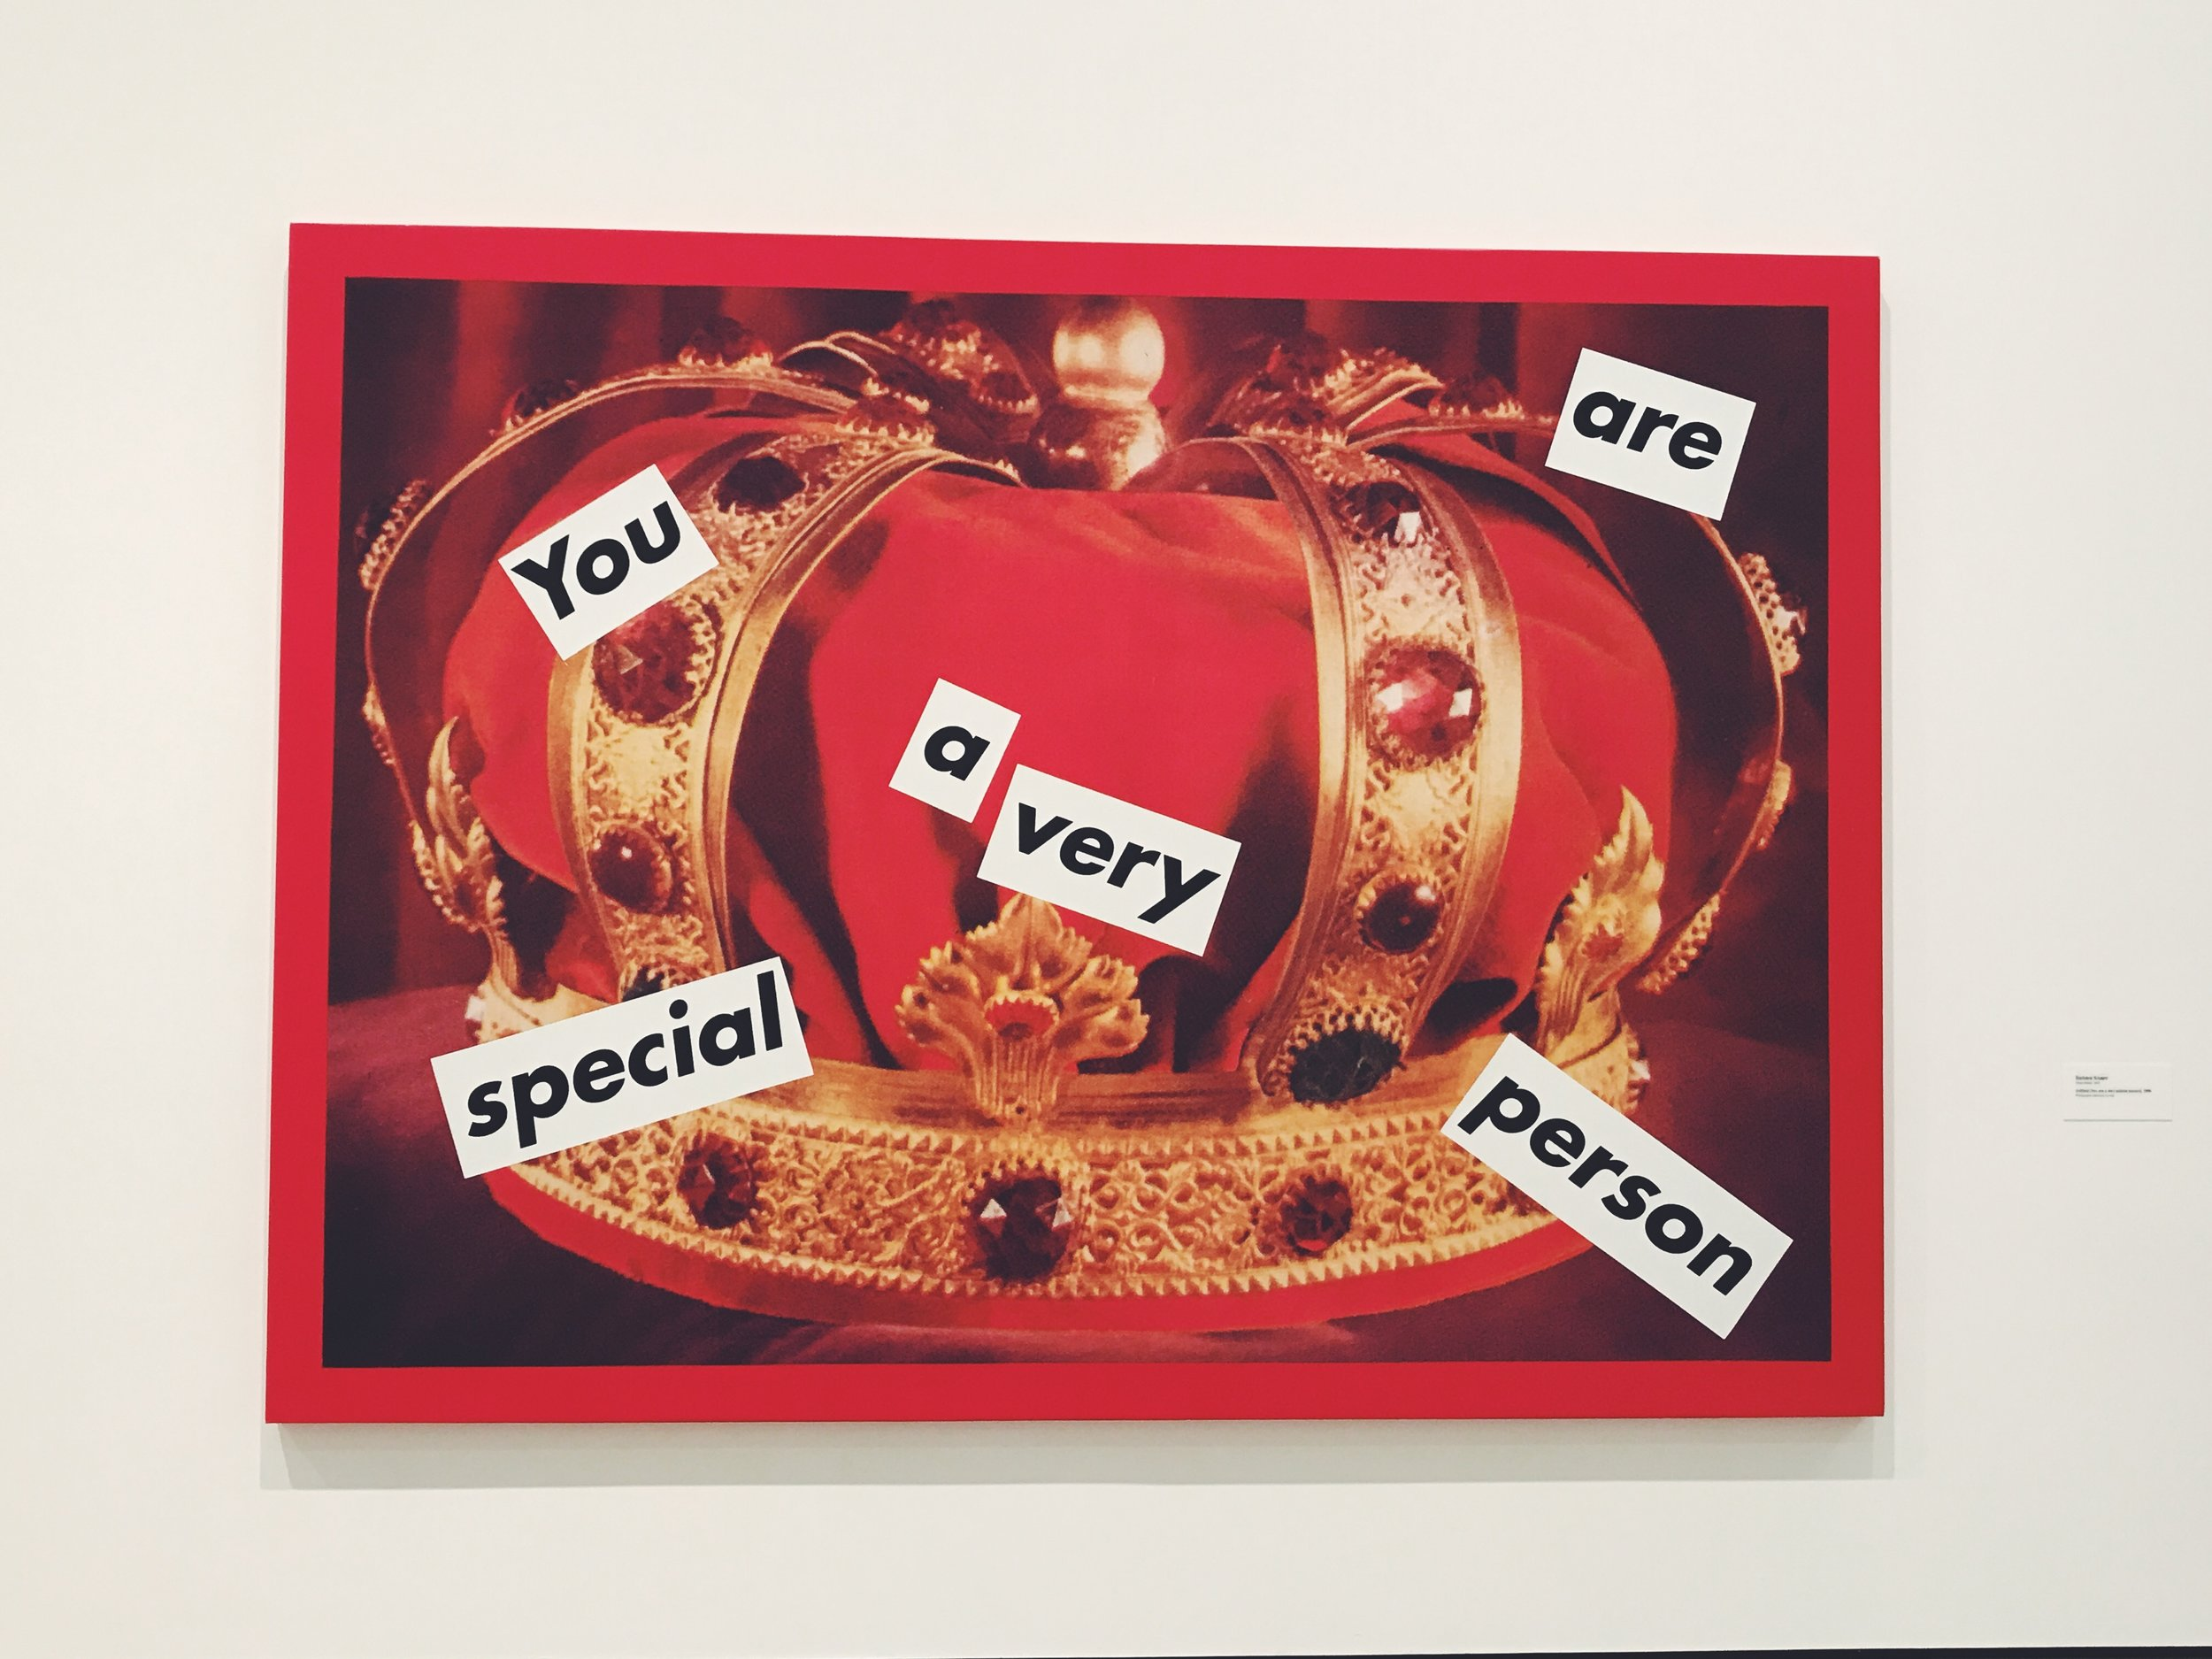 Barbara Kruger - Untitled (You are a very special person)